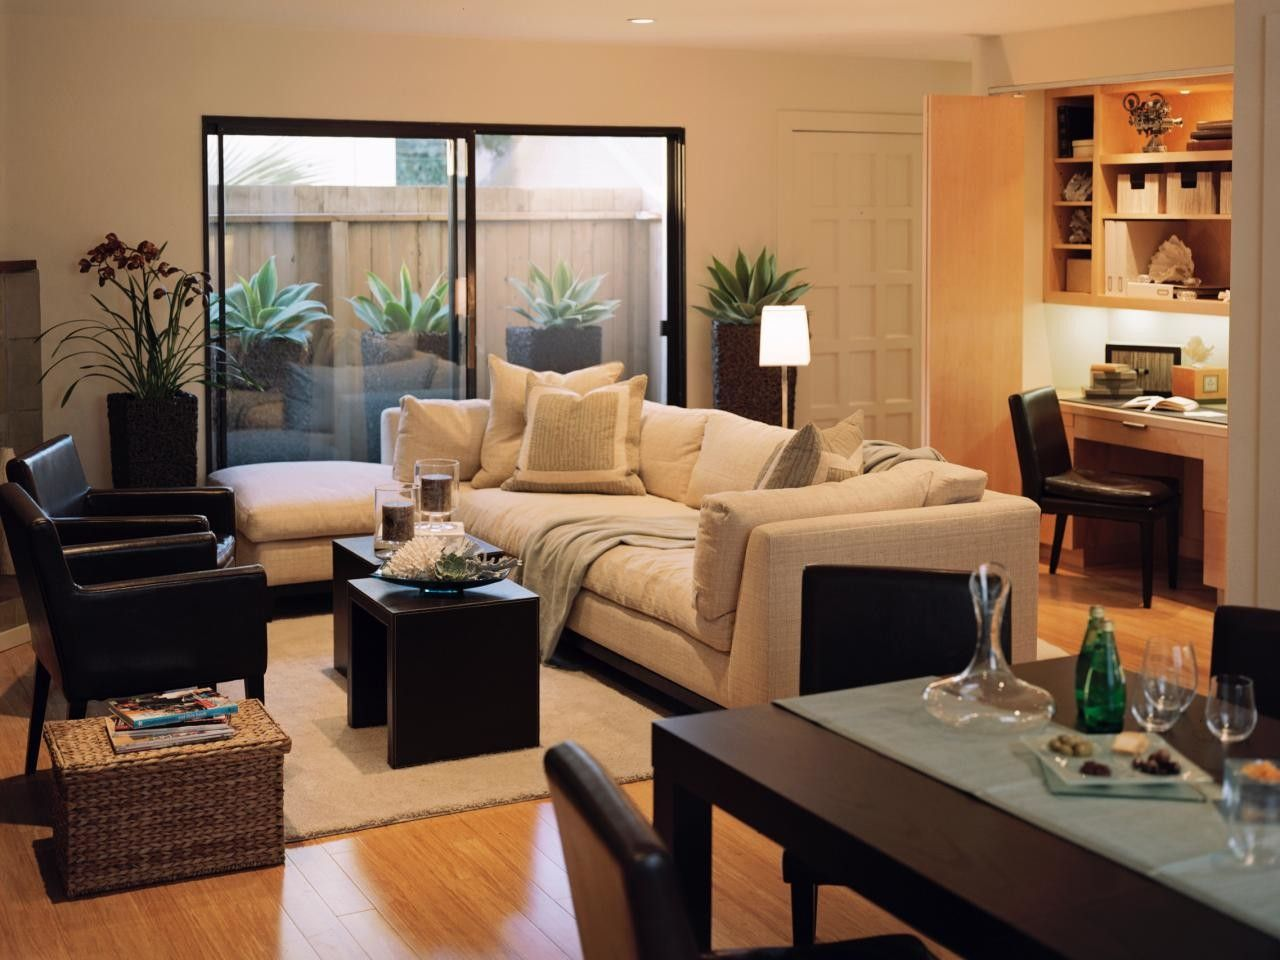 Excellent Photo of Townhouse Decorating Ideas Modern - Interior